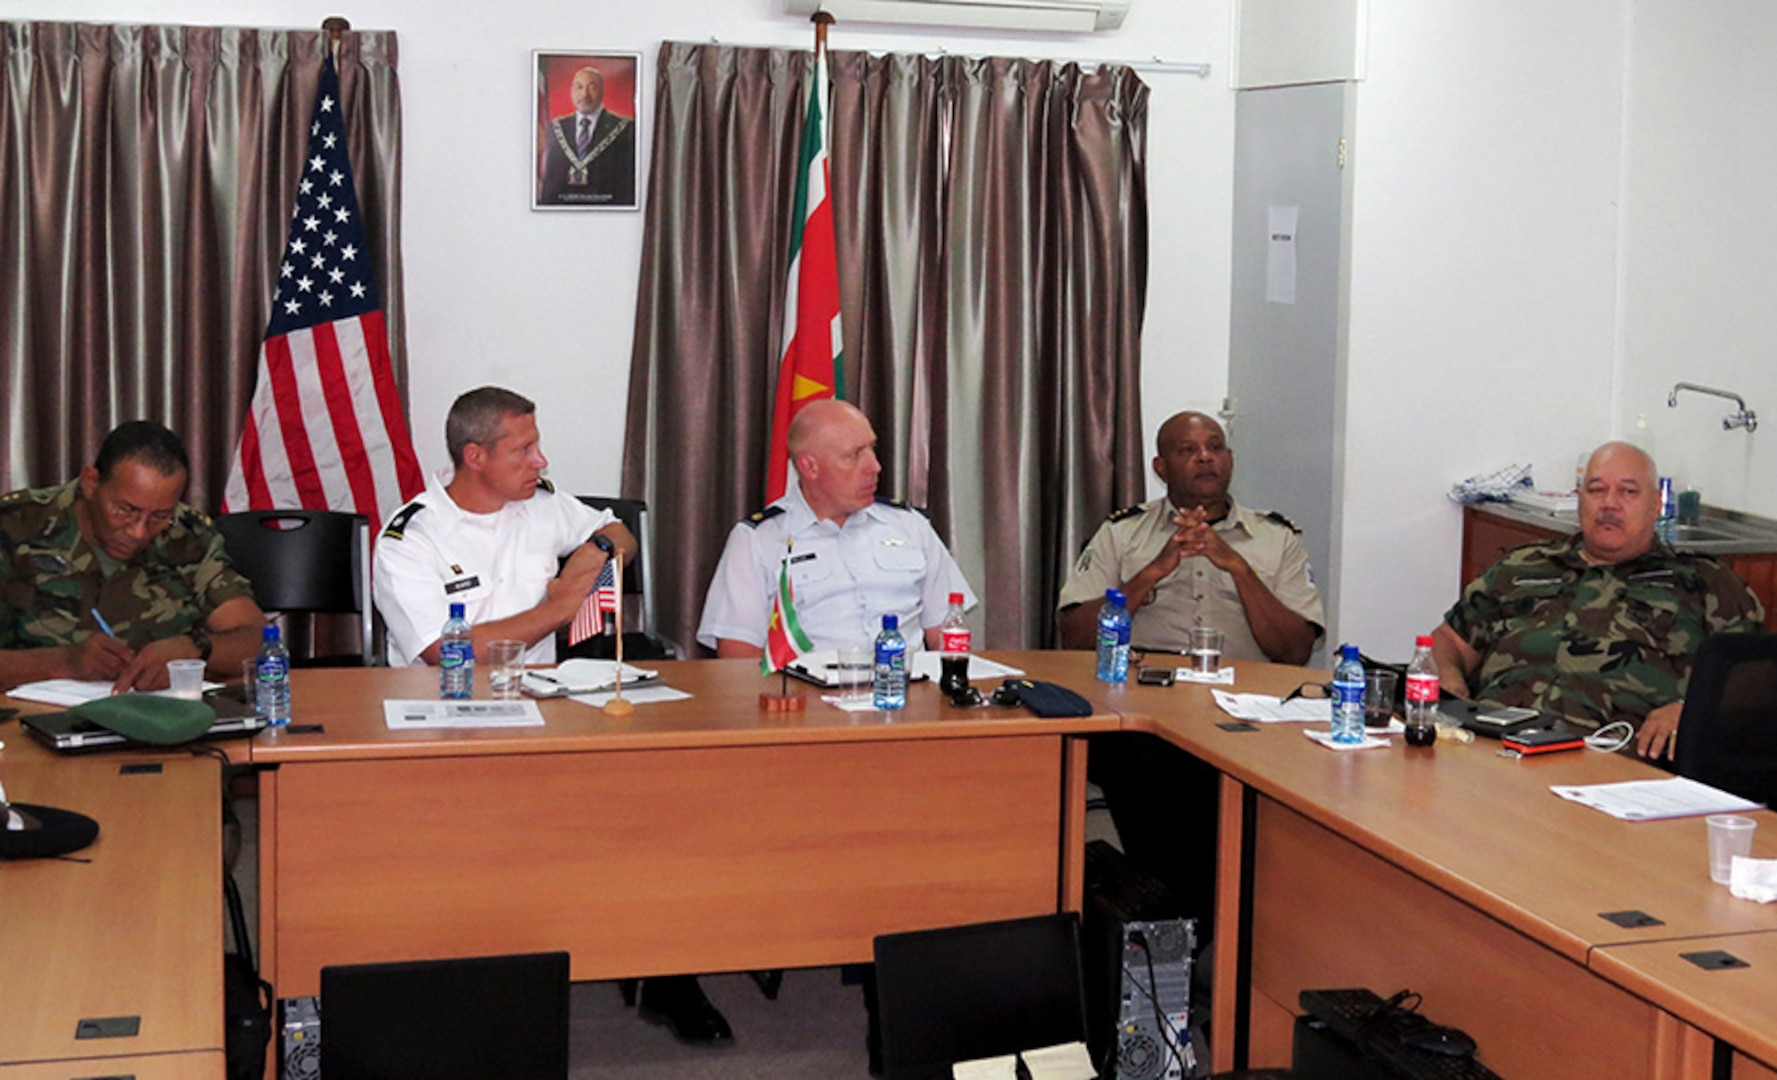 U.S. Army Lt. Col. Orson Ward, second from left, South Dakota Army National Guard, and U.S. Air Force Maj. Kevin Miller, center, South Dakota Air National Guard, participate in a subject matter expert exchange on strategic planning in Paramaribo, Suriname, July 15, 2015.